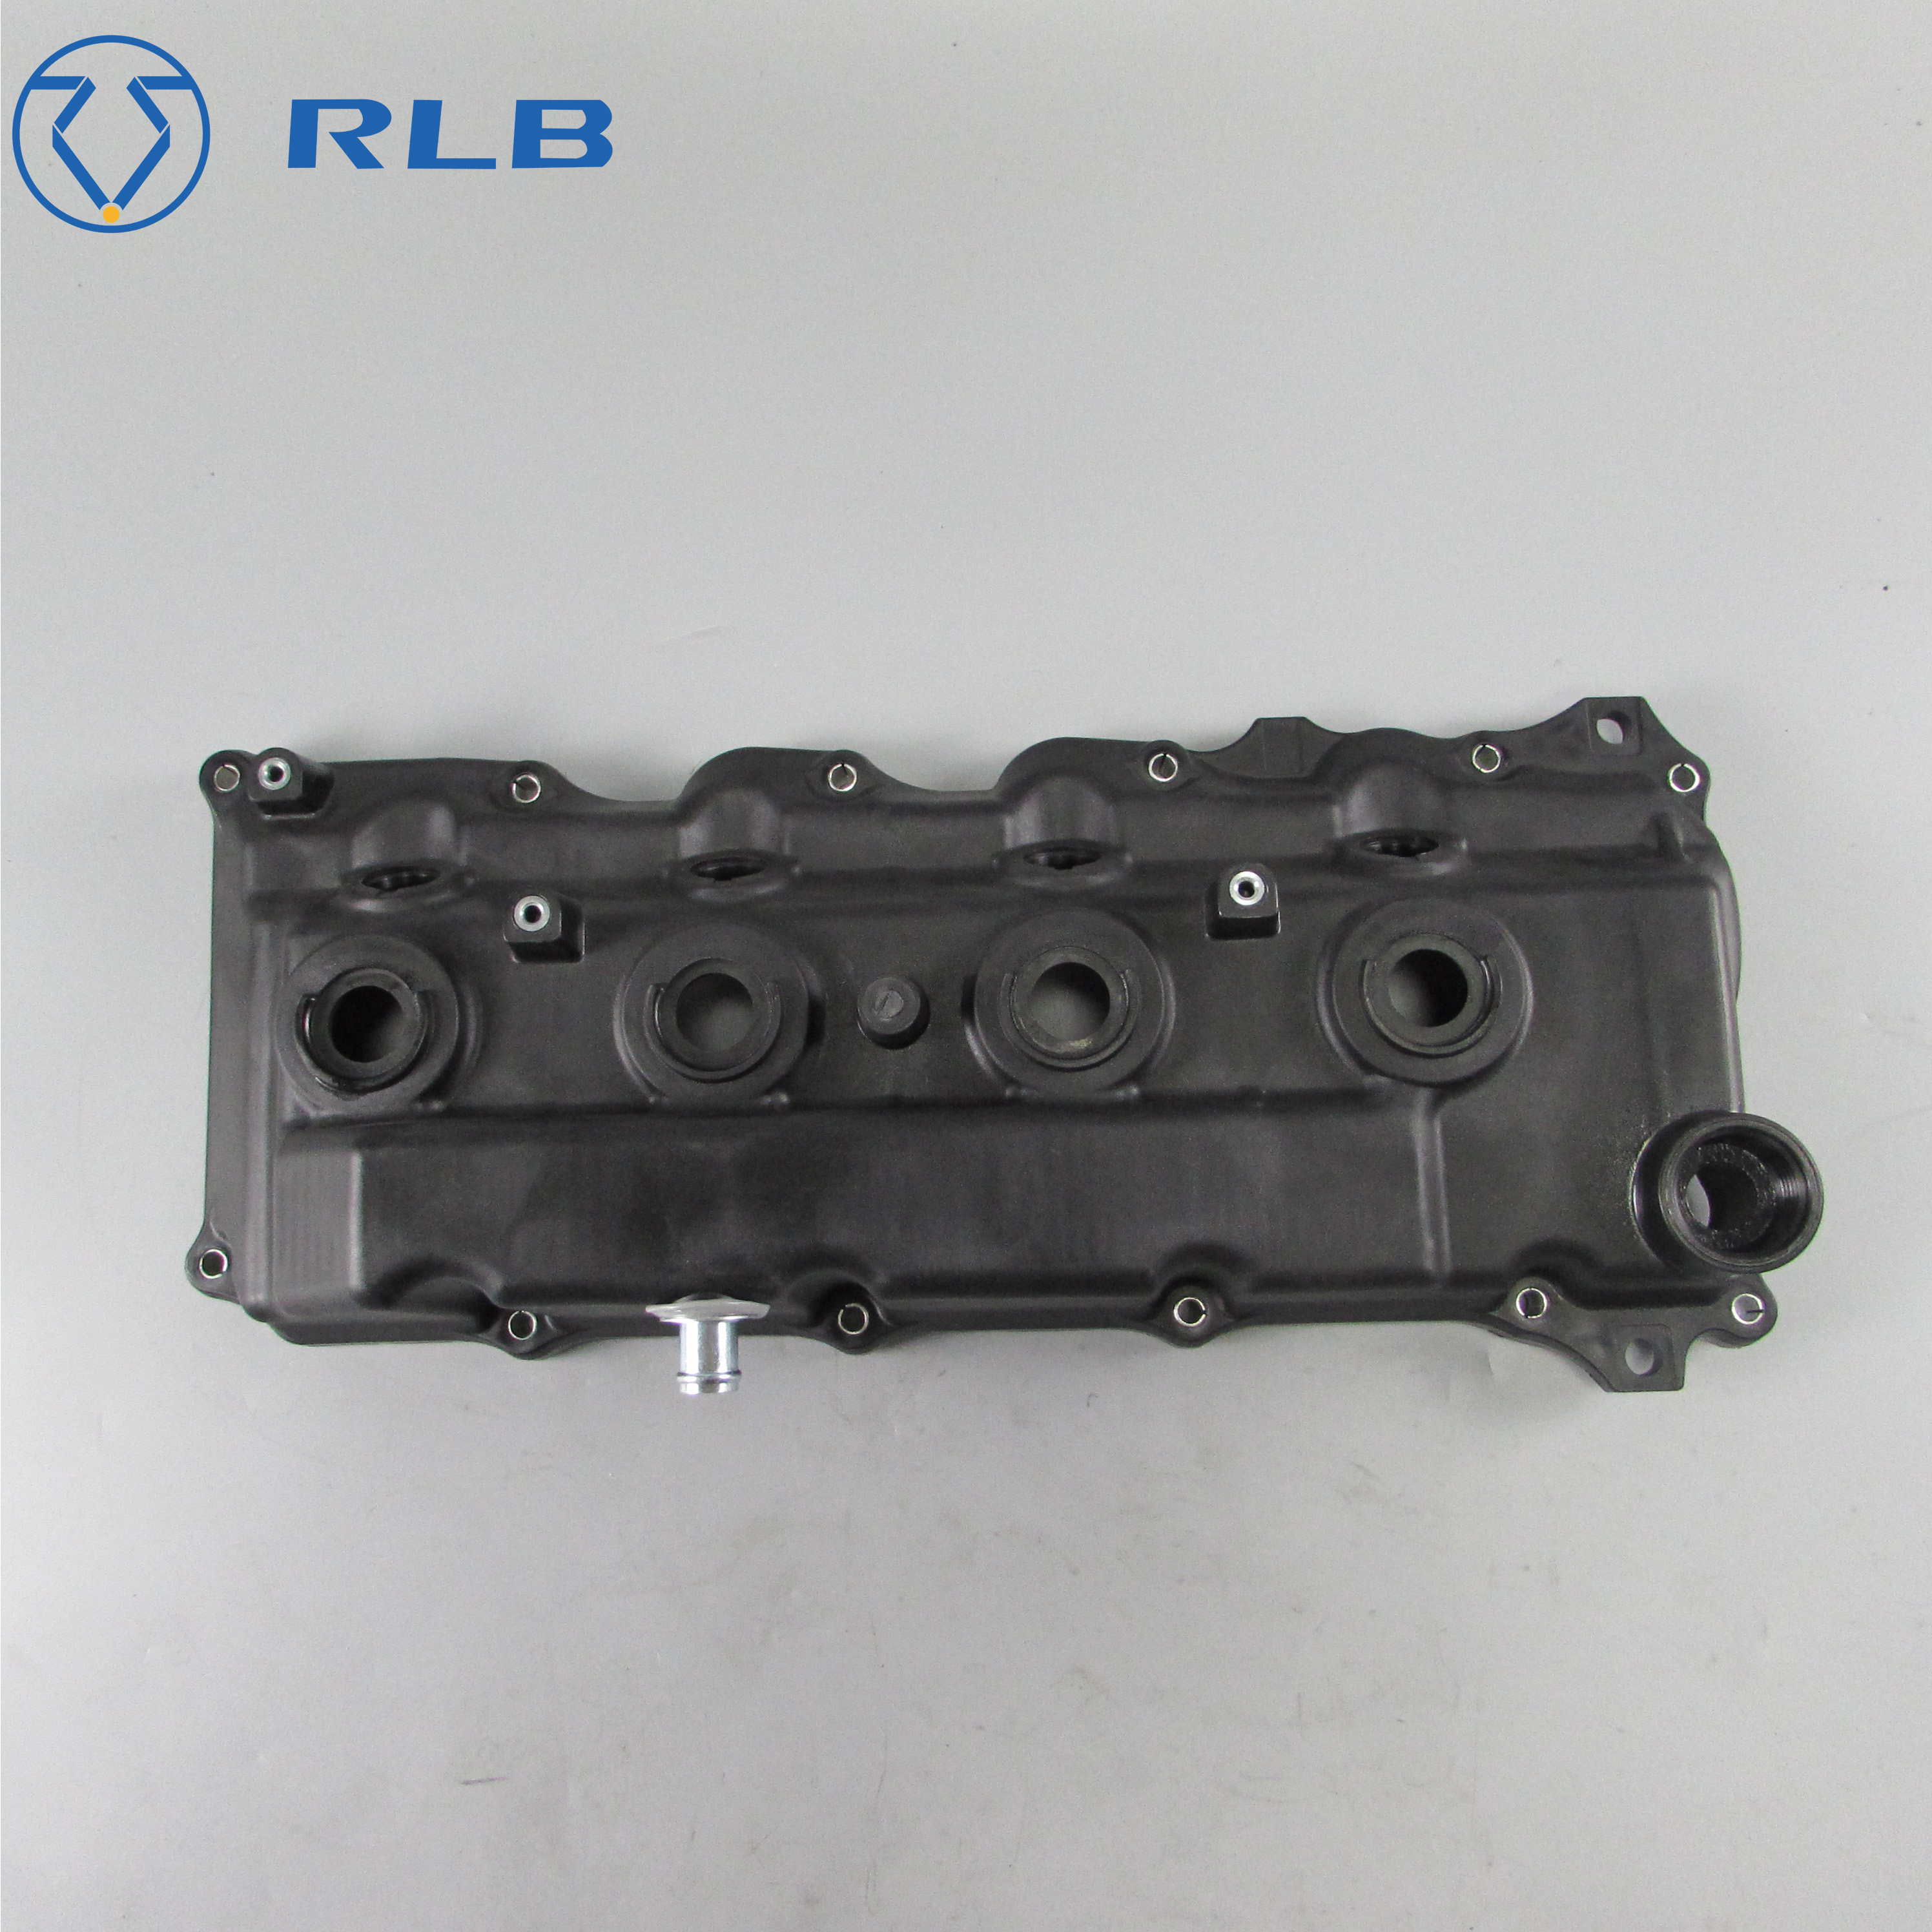 11210-0L020 voor Toyota hilux fortuner innova 1KD 2KD Cover sub-assy, cilinderkop 112100L020